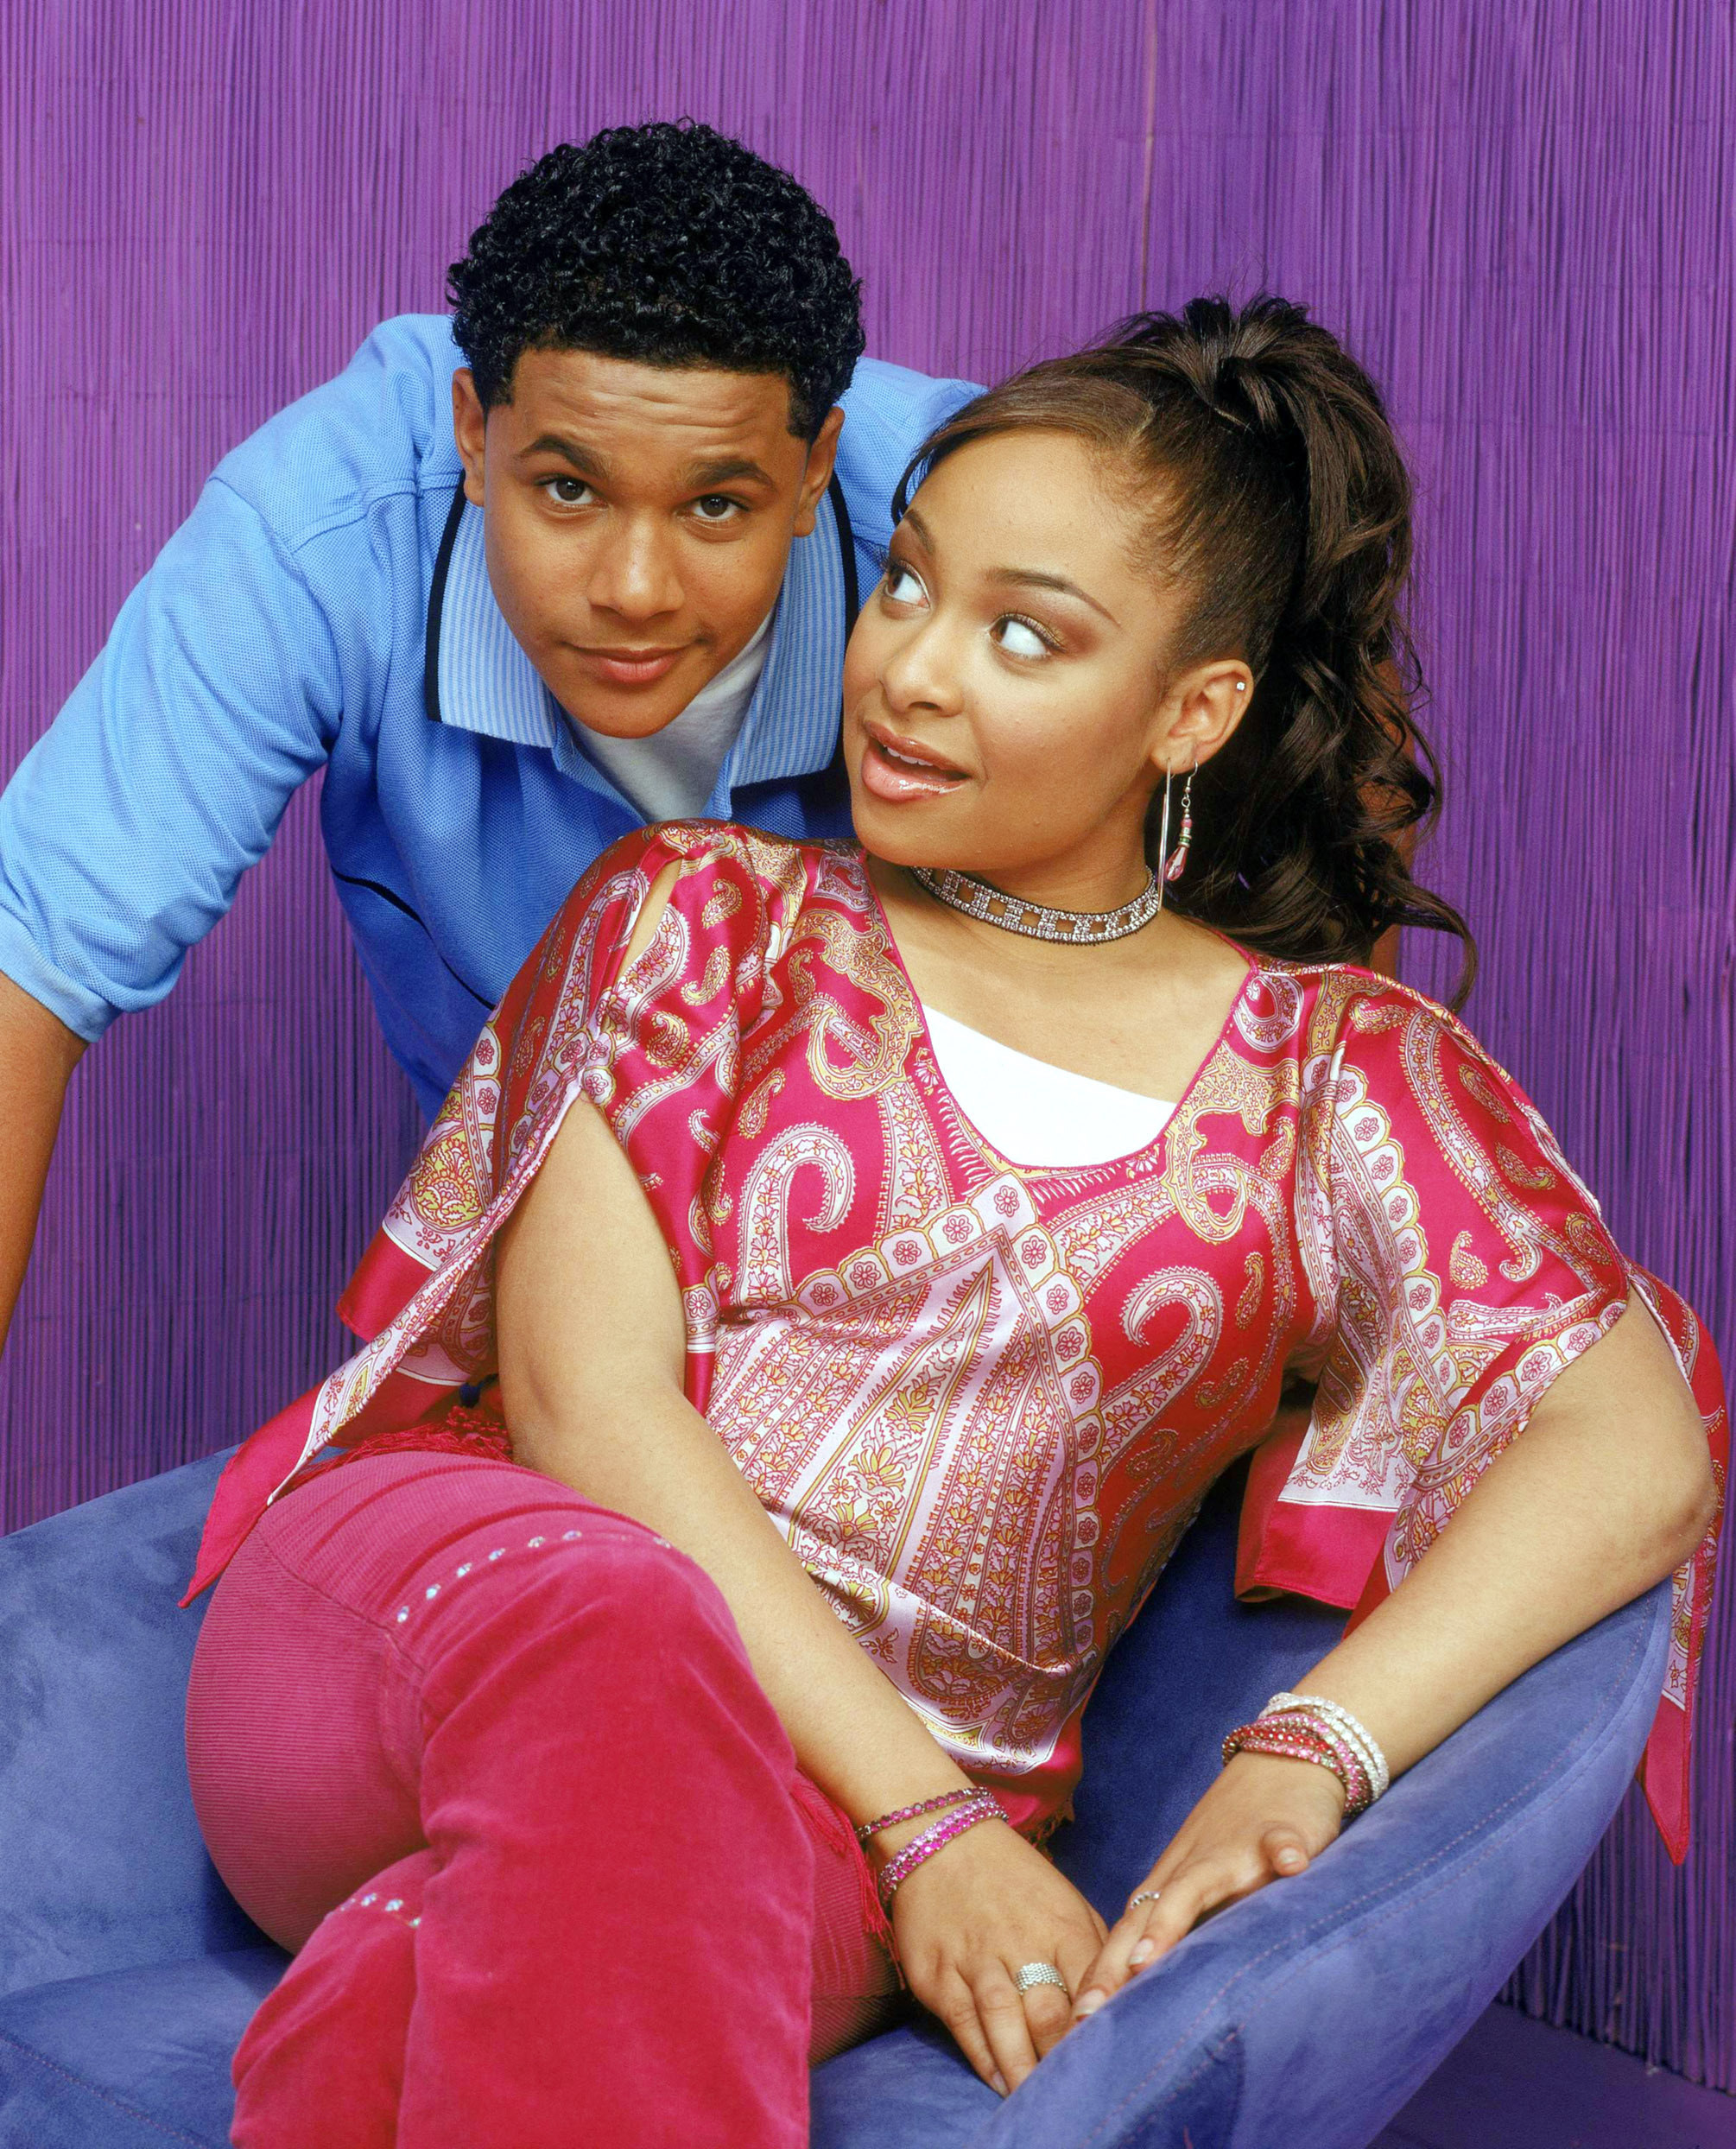 Raven sits on a chair as Devon leans over as he stands behind her